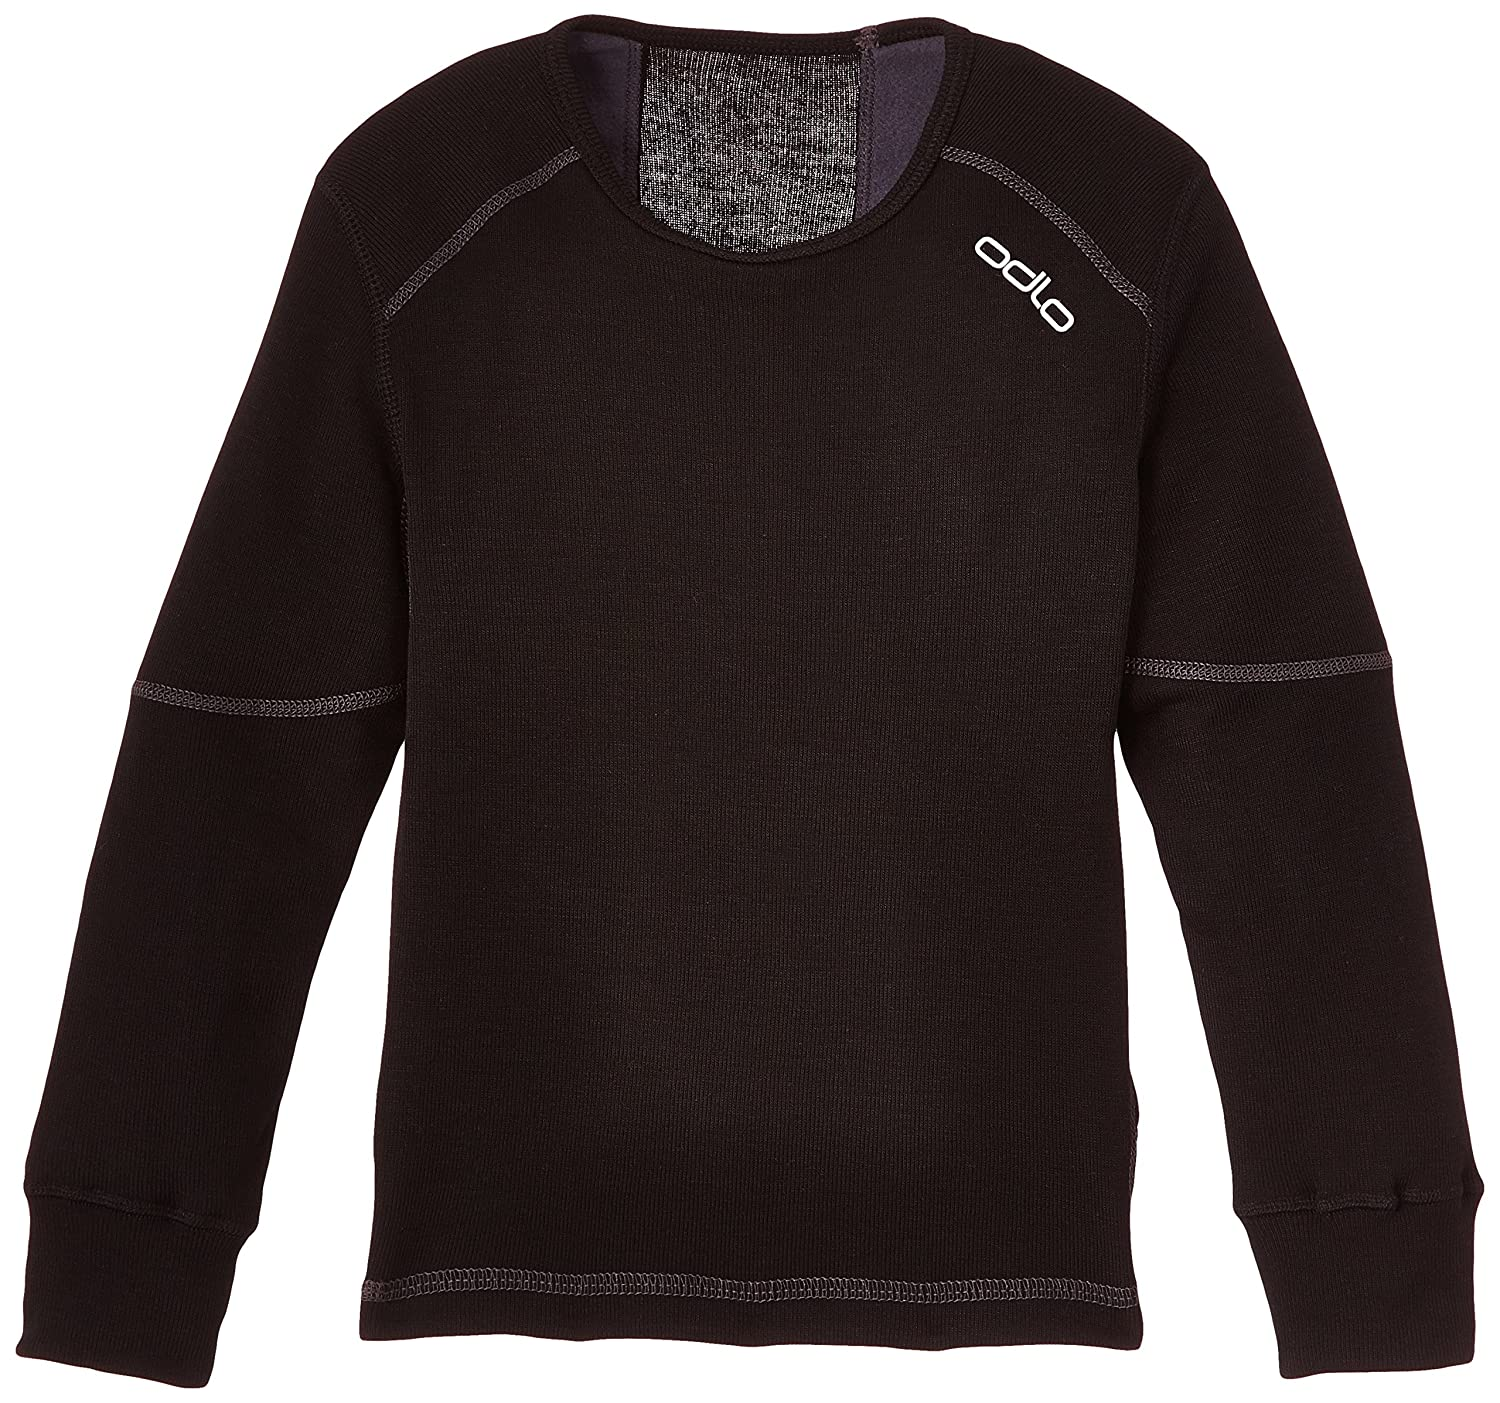 ODLO children's Long-Sleeved Crew Neck T-Shirt with X-Warm 155169